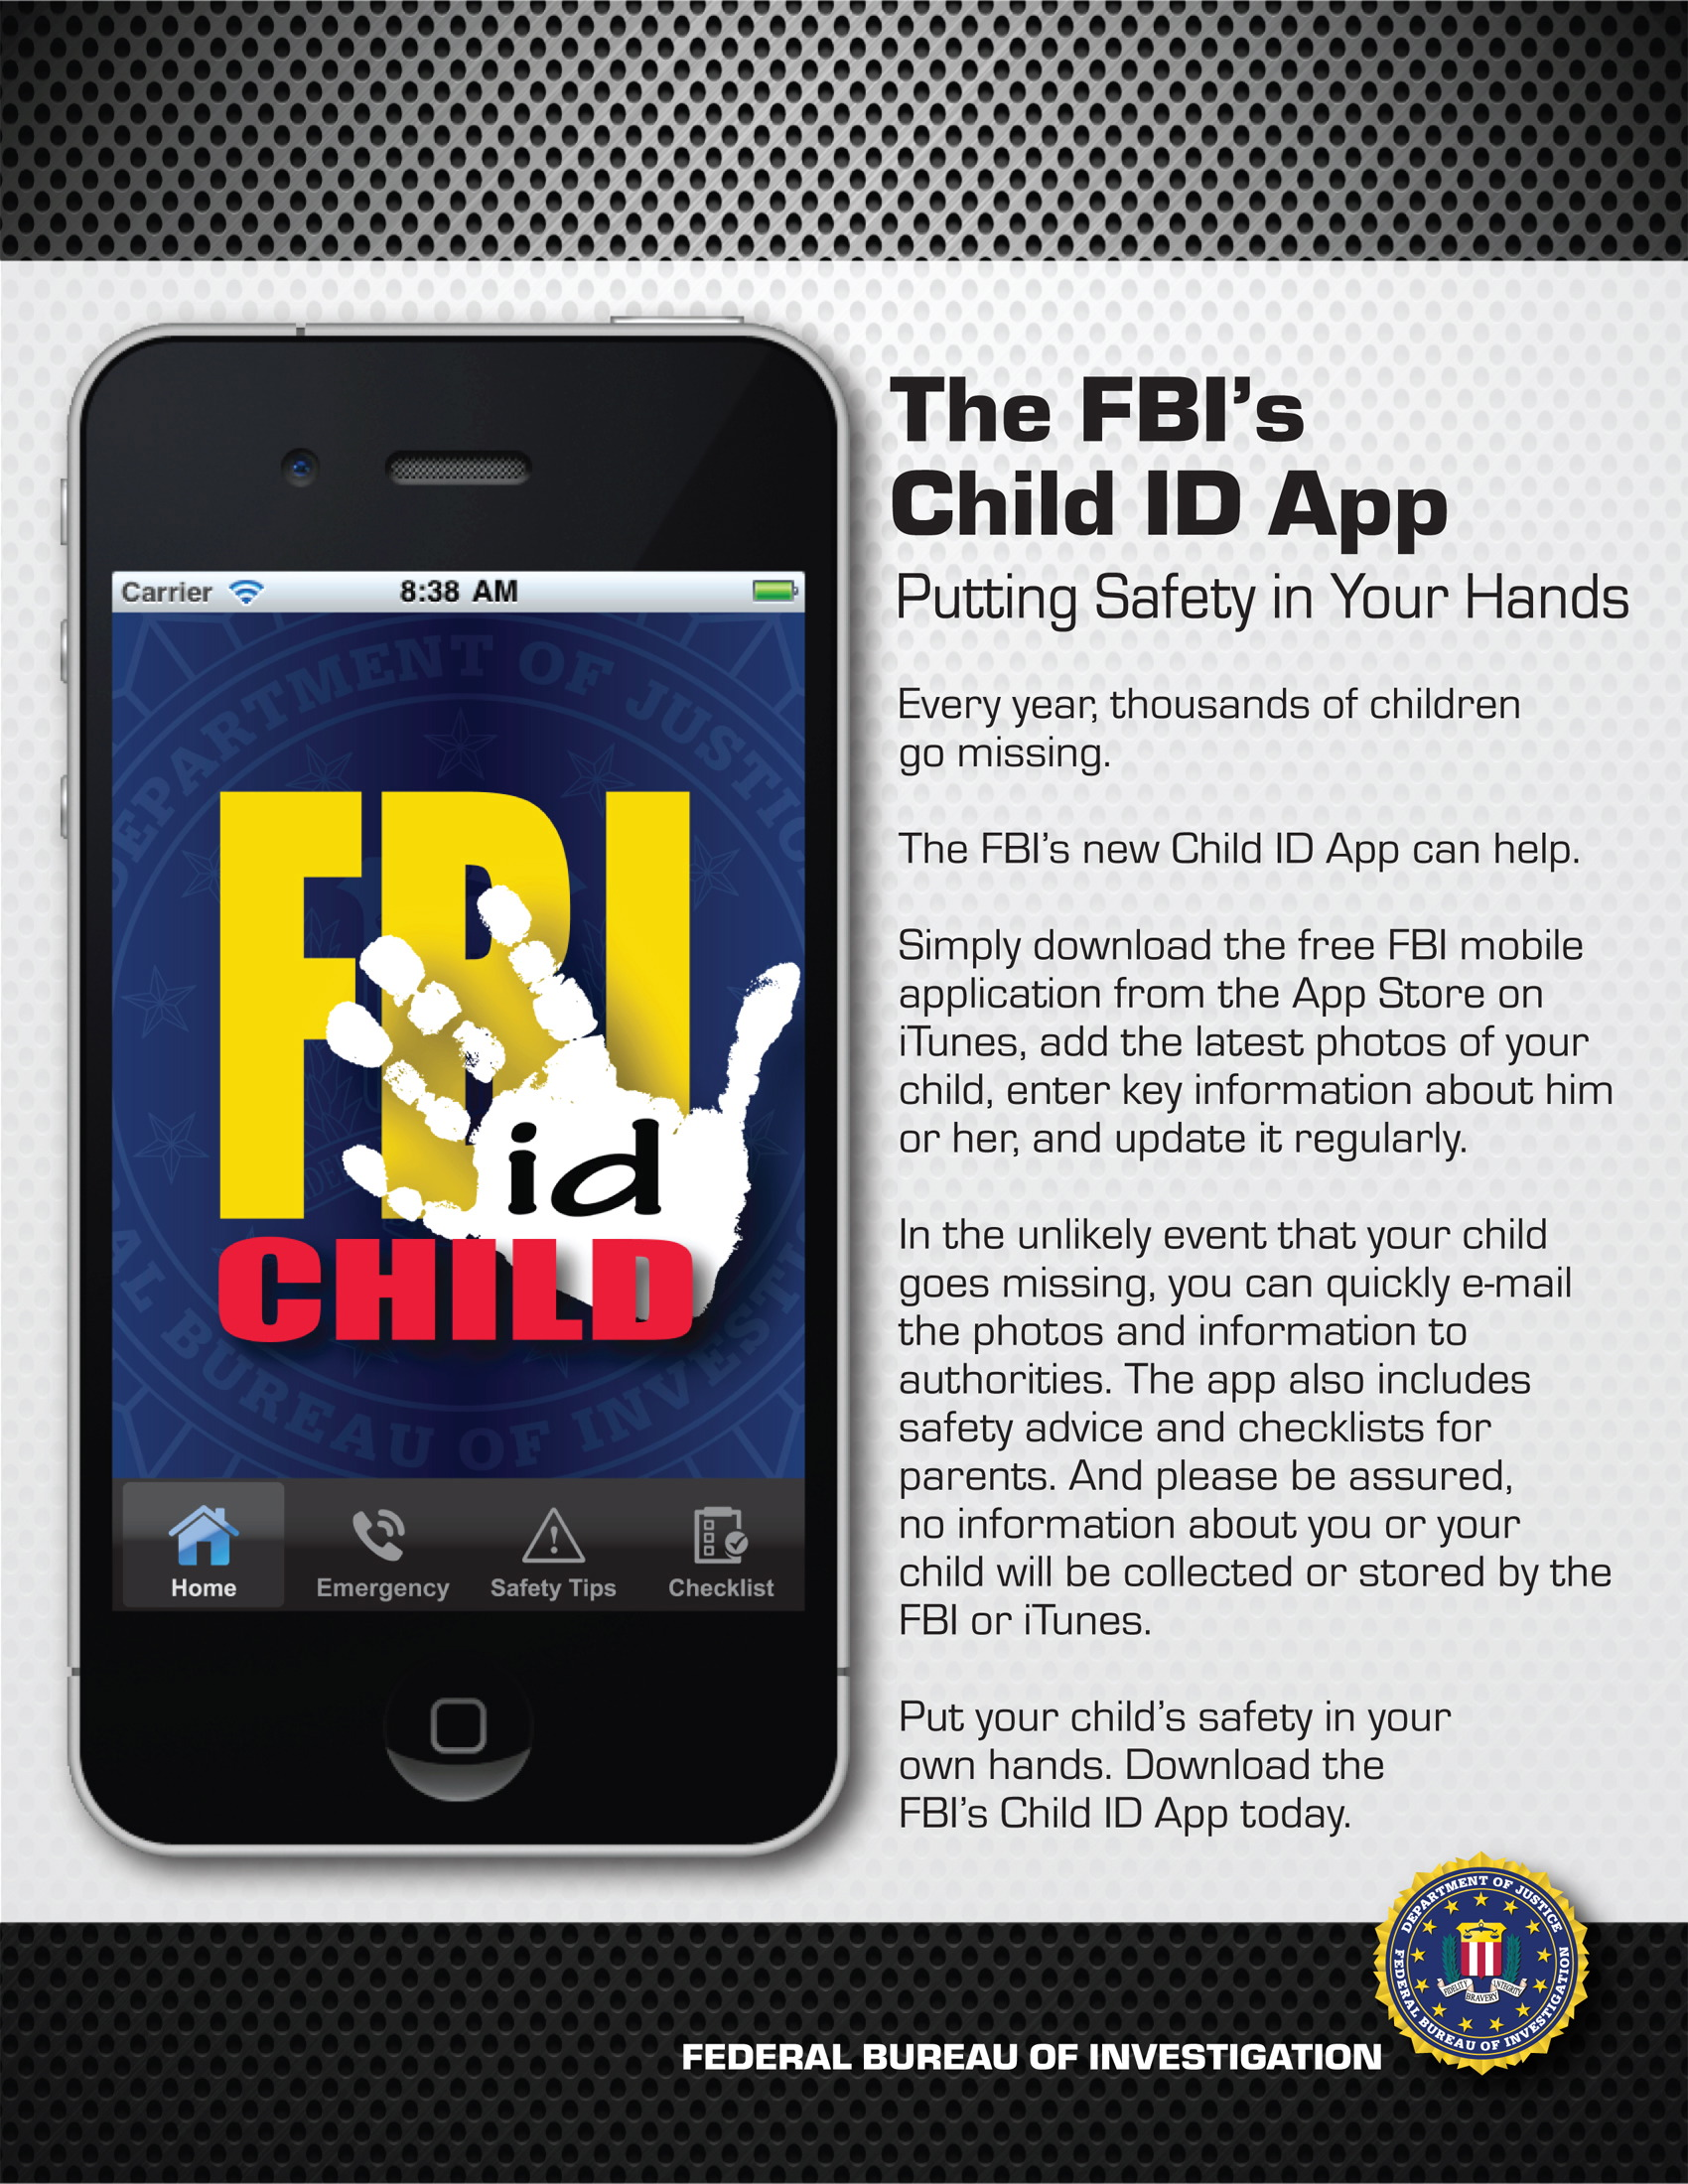 FBI Child ID App Poster